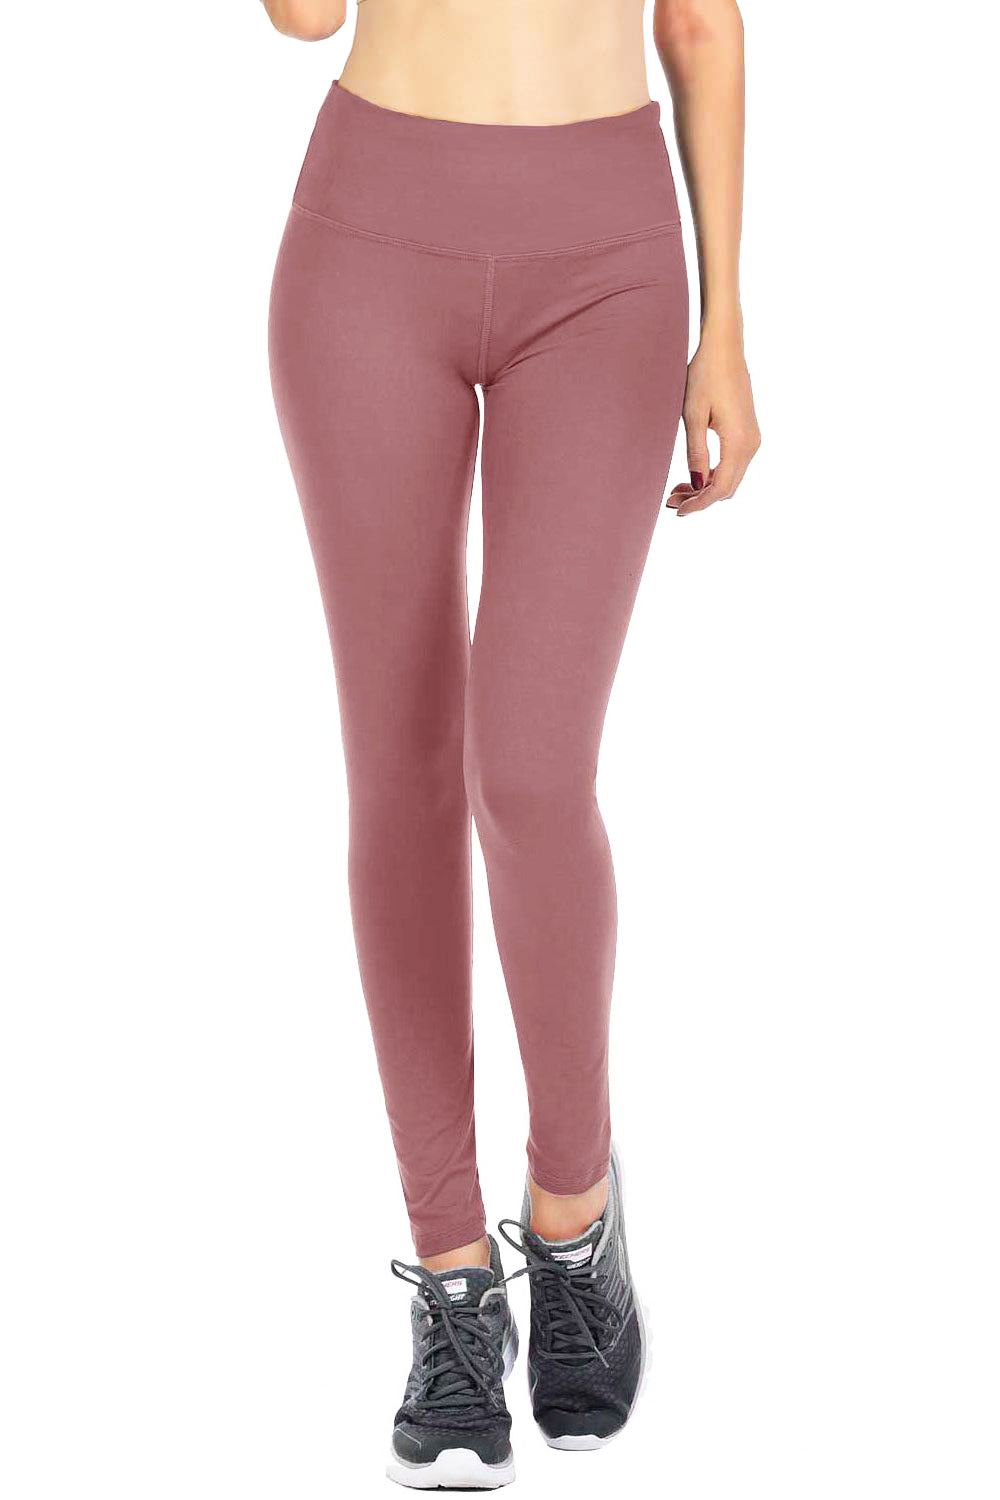 VIV Collection NEW YOGA MID Waistband w/ Hidden Pocket